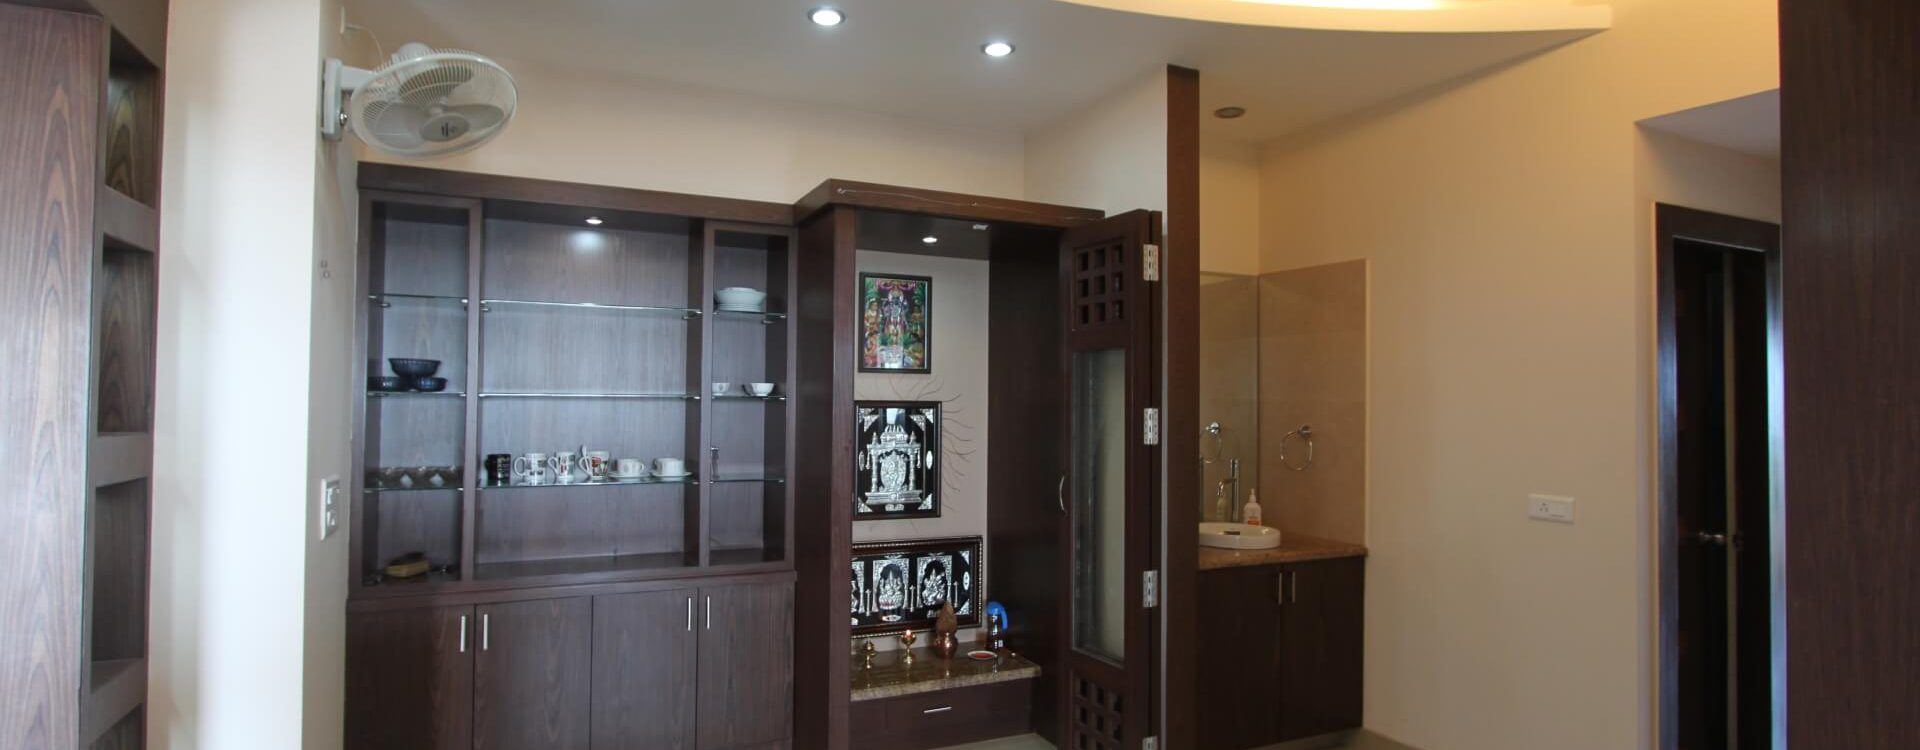 Mr. Kishore Shetty's Residence at Ambar Apartment Urwa Mangalore